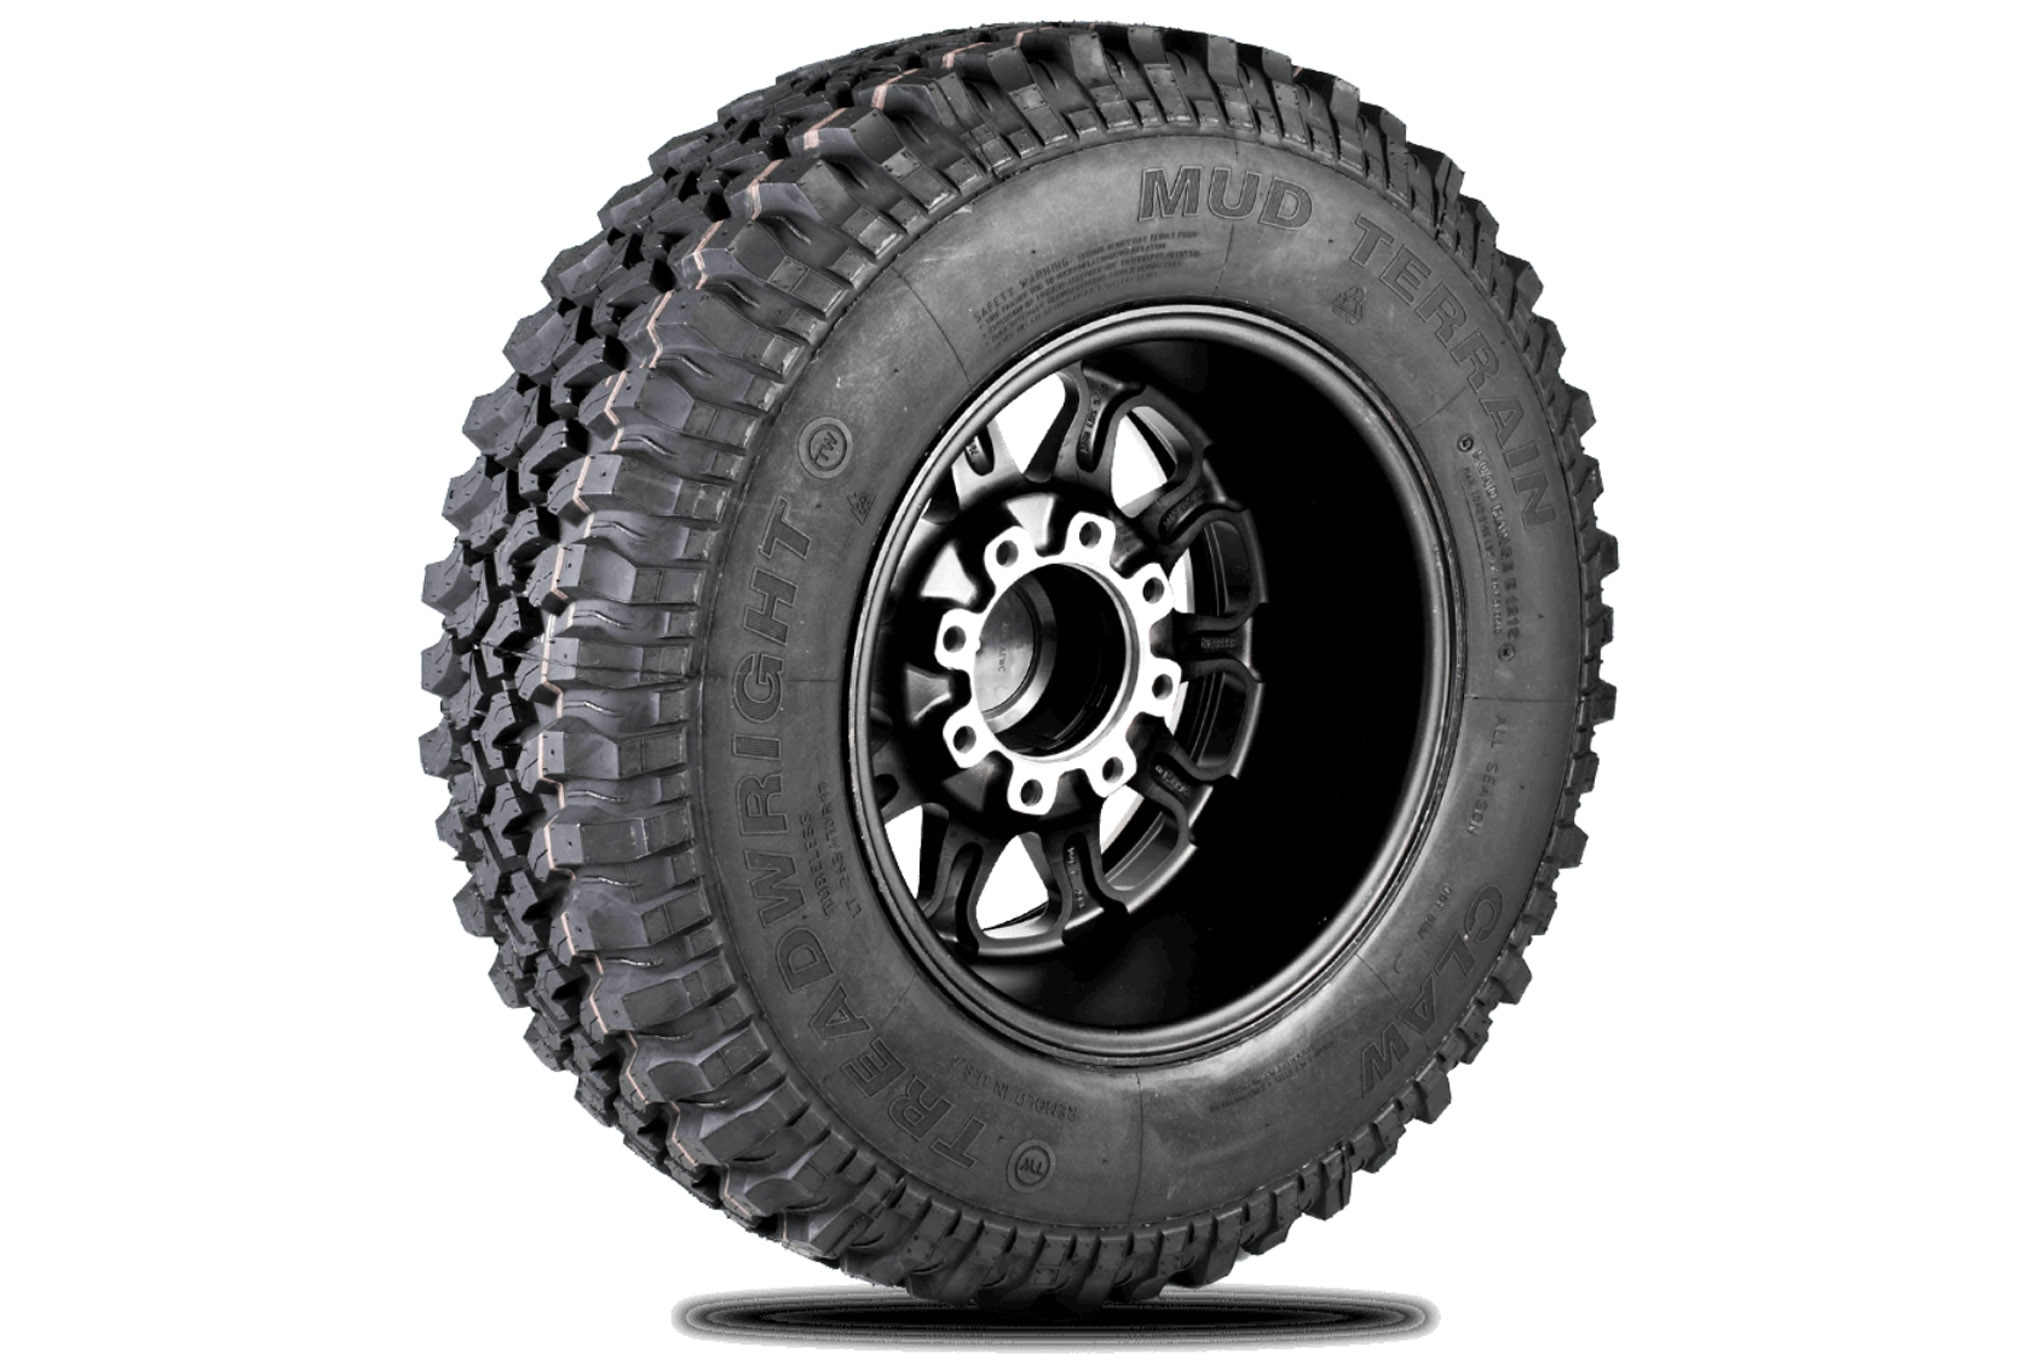 027 new tires treadwright claw mt